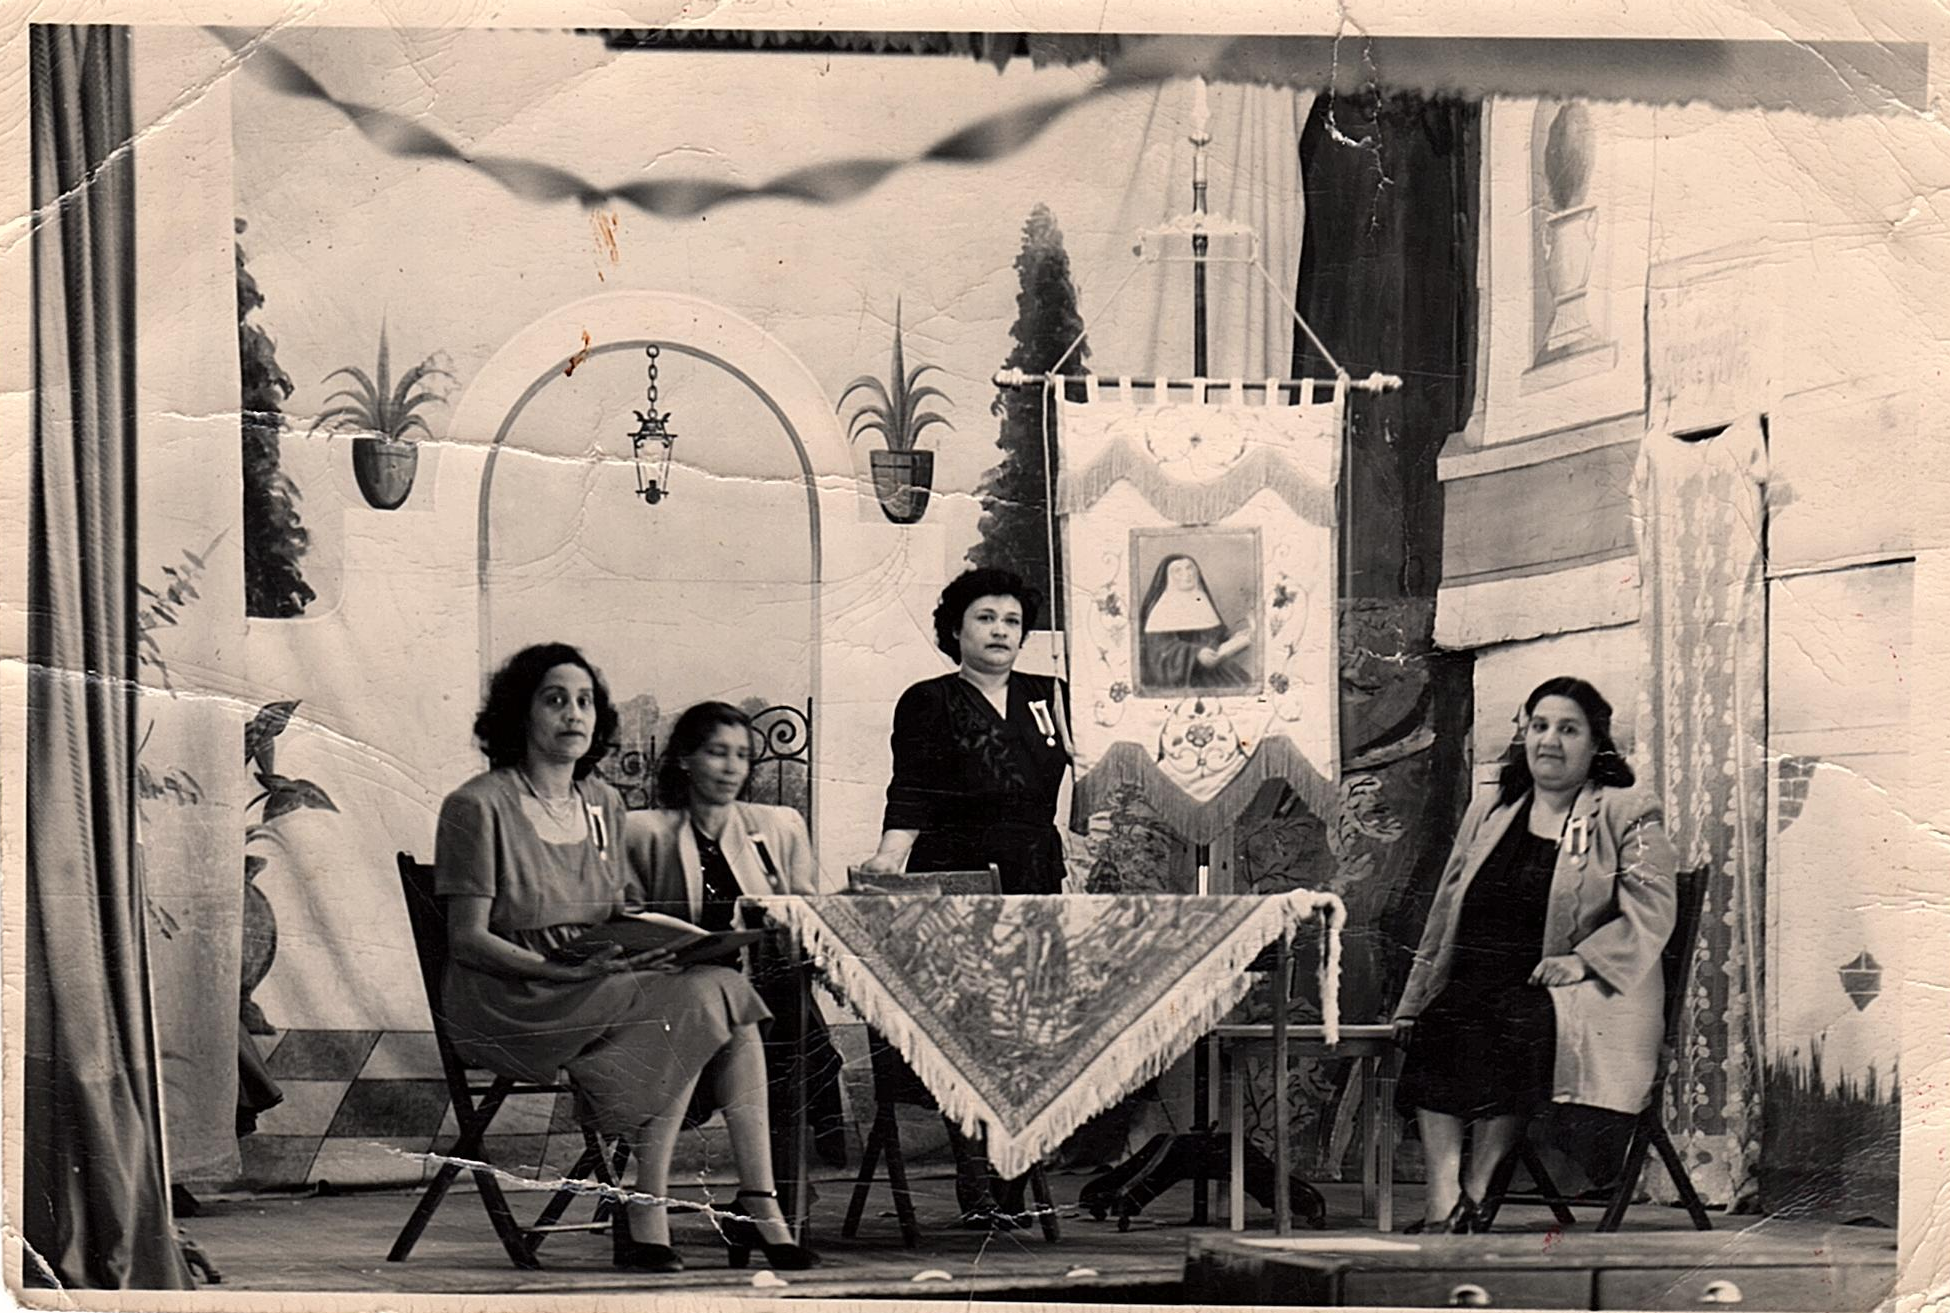 Ayala, Agapita (1907)— (standing), with Cuca Elias (r) and 2 unk women El Santo Niño Church, ca nid-1940s.png